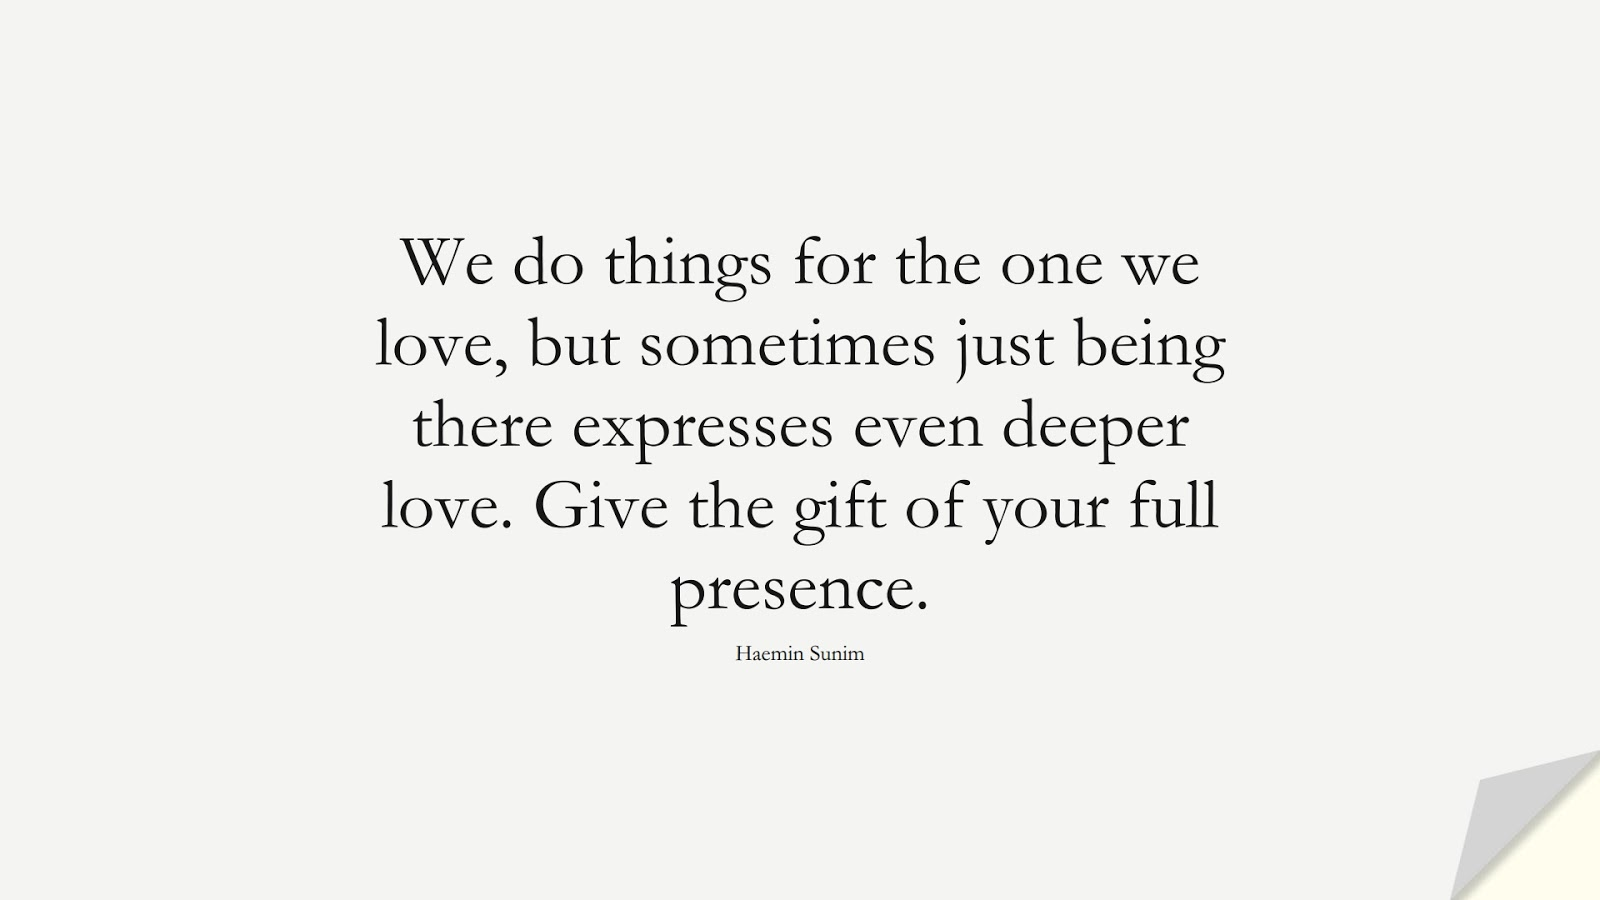 We do things for the one we love, but sometimes just being there expresses even deeper love. Give the gift of your full presence. (Haemin Sunim);  #RelationshipQuotes